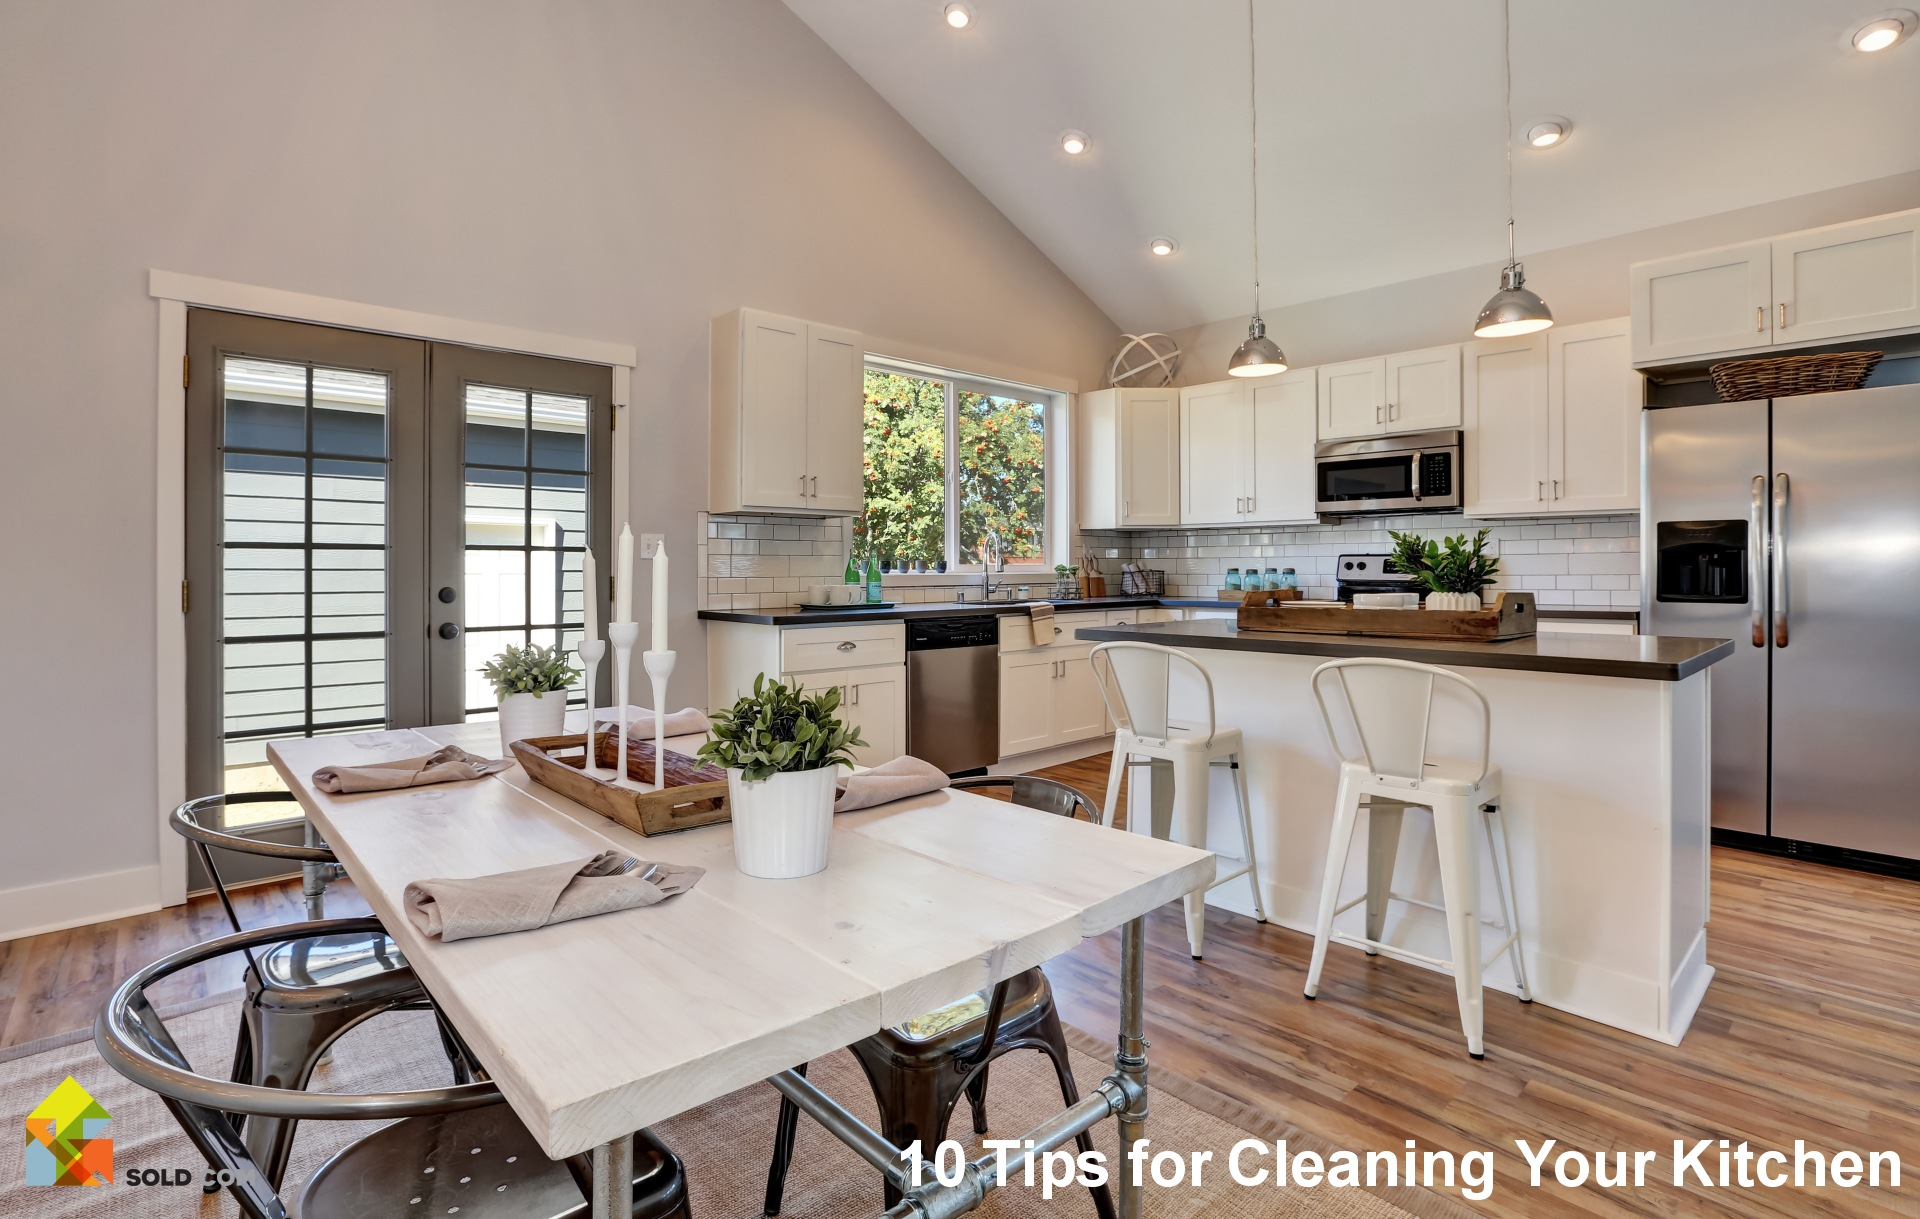 10 Tips for Cleaning Your Kitchen Before You Sell